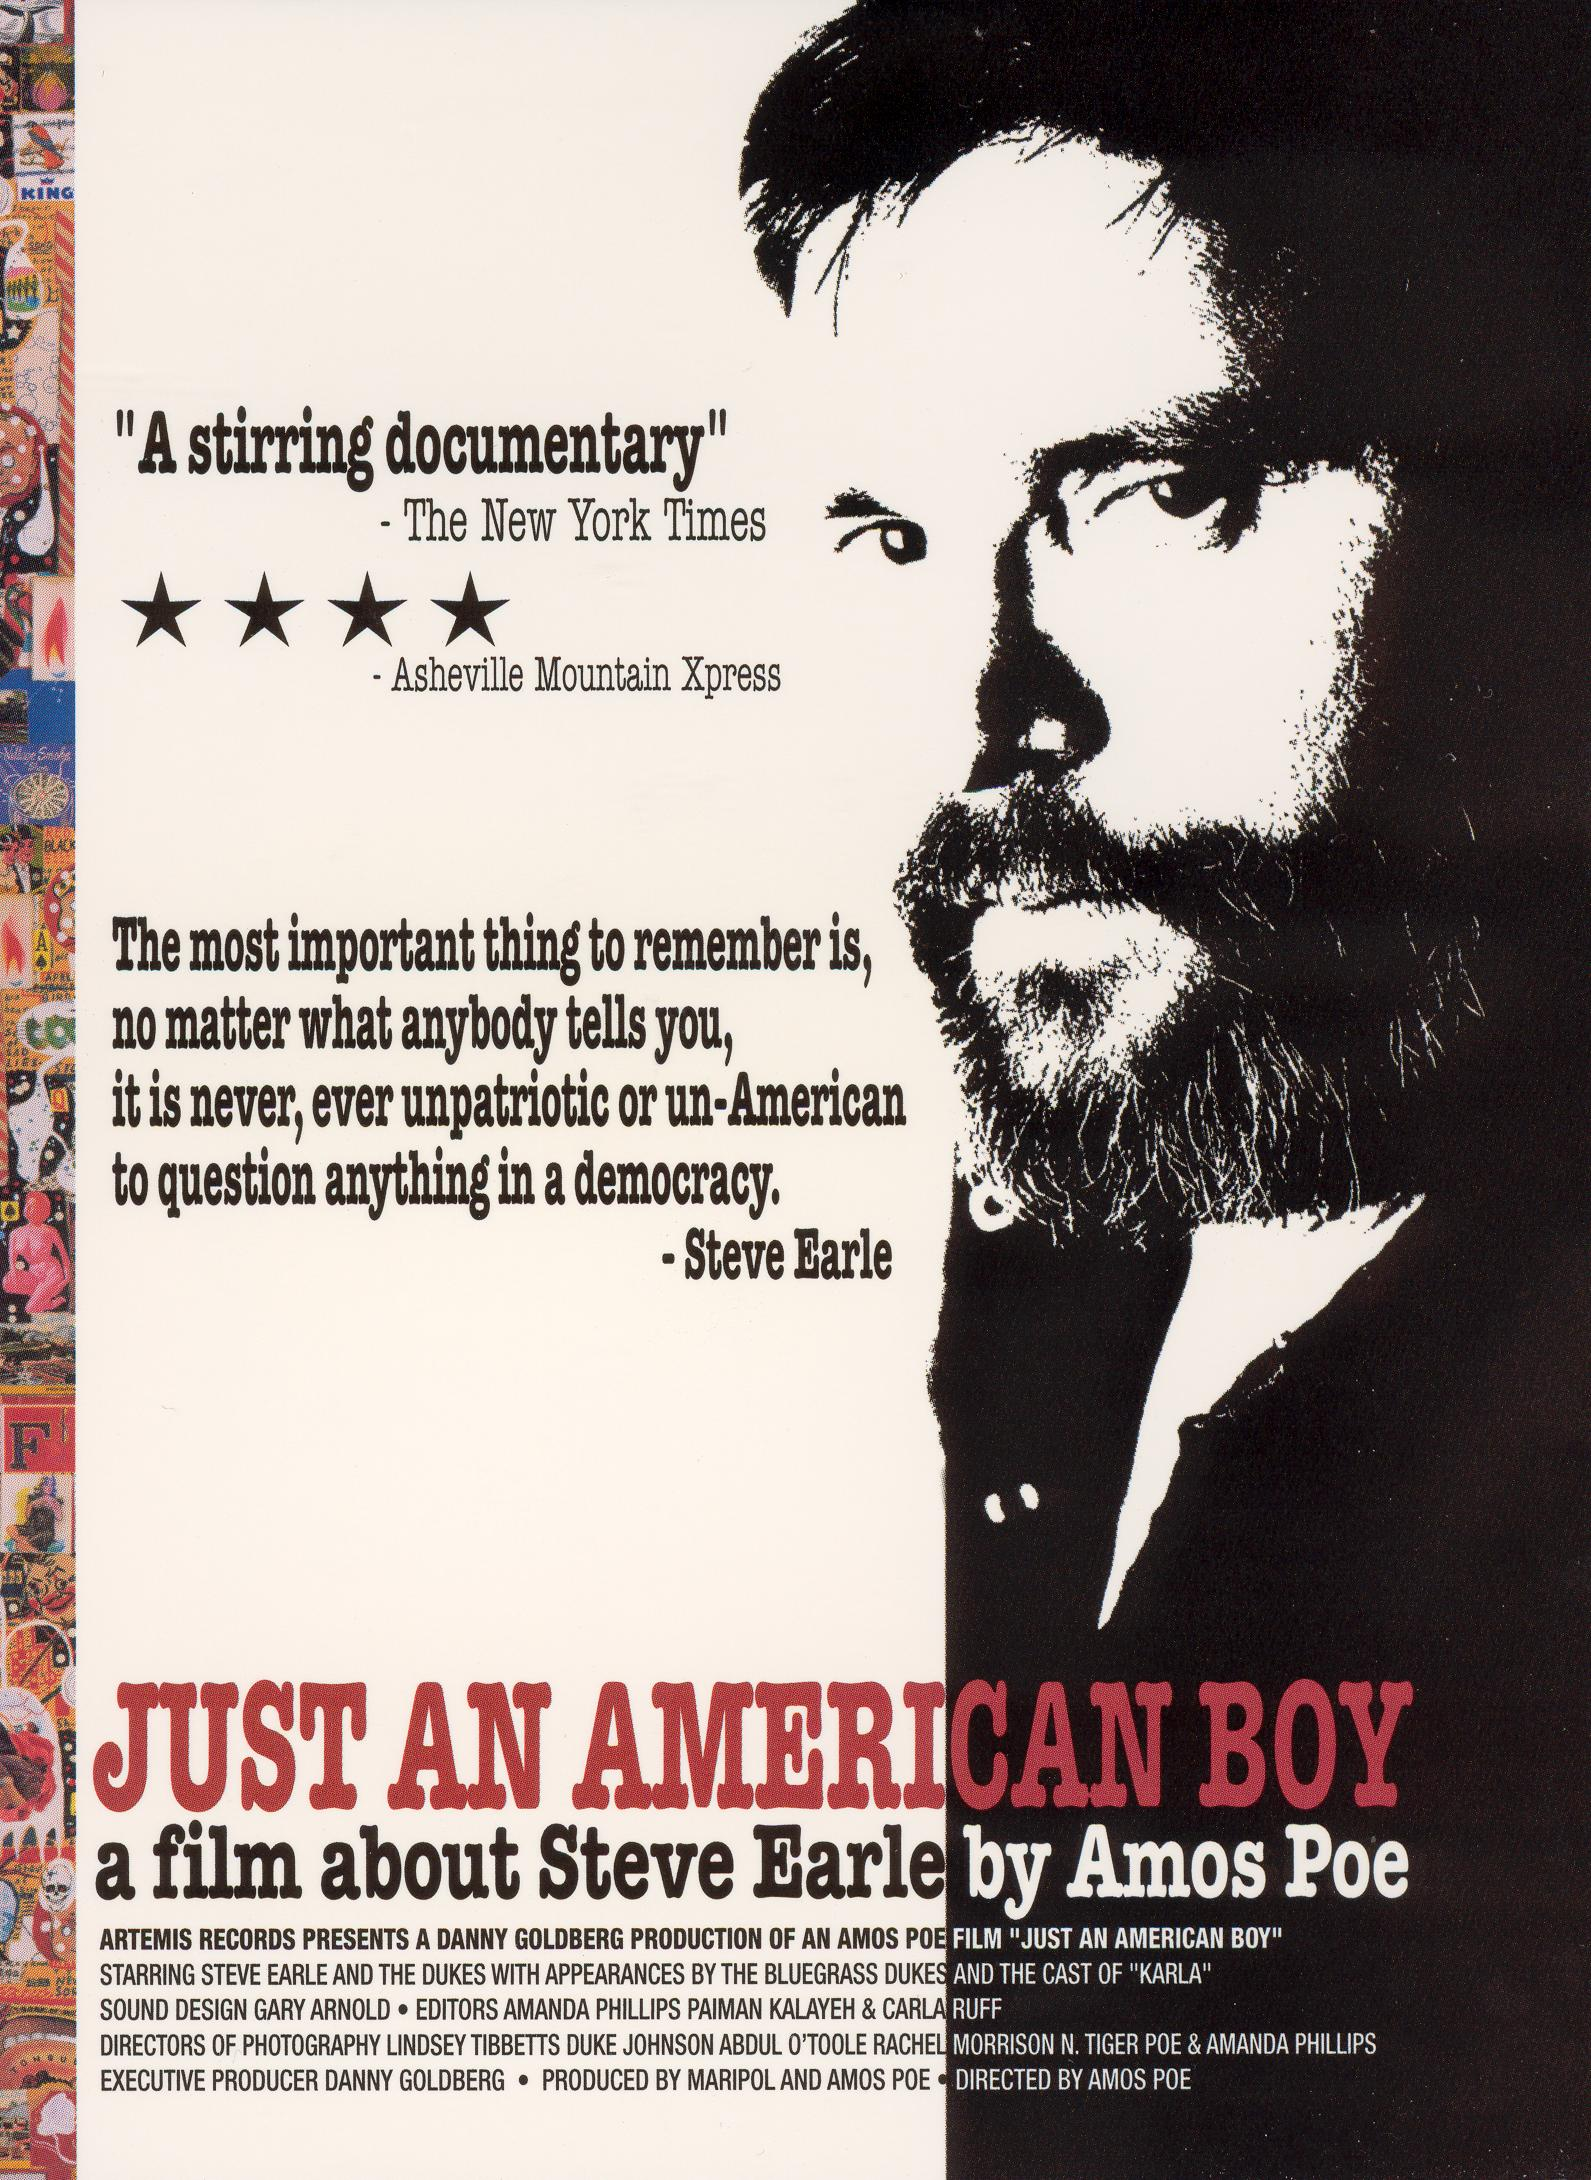 Just an American Boy (2003)